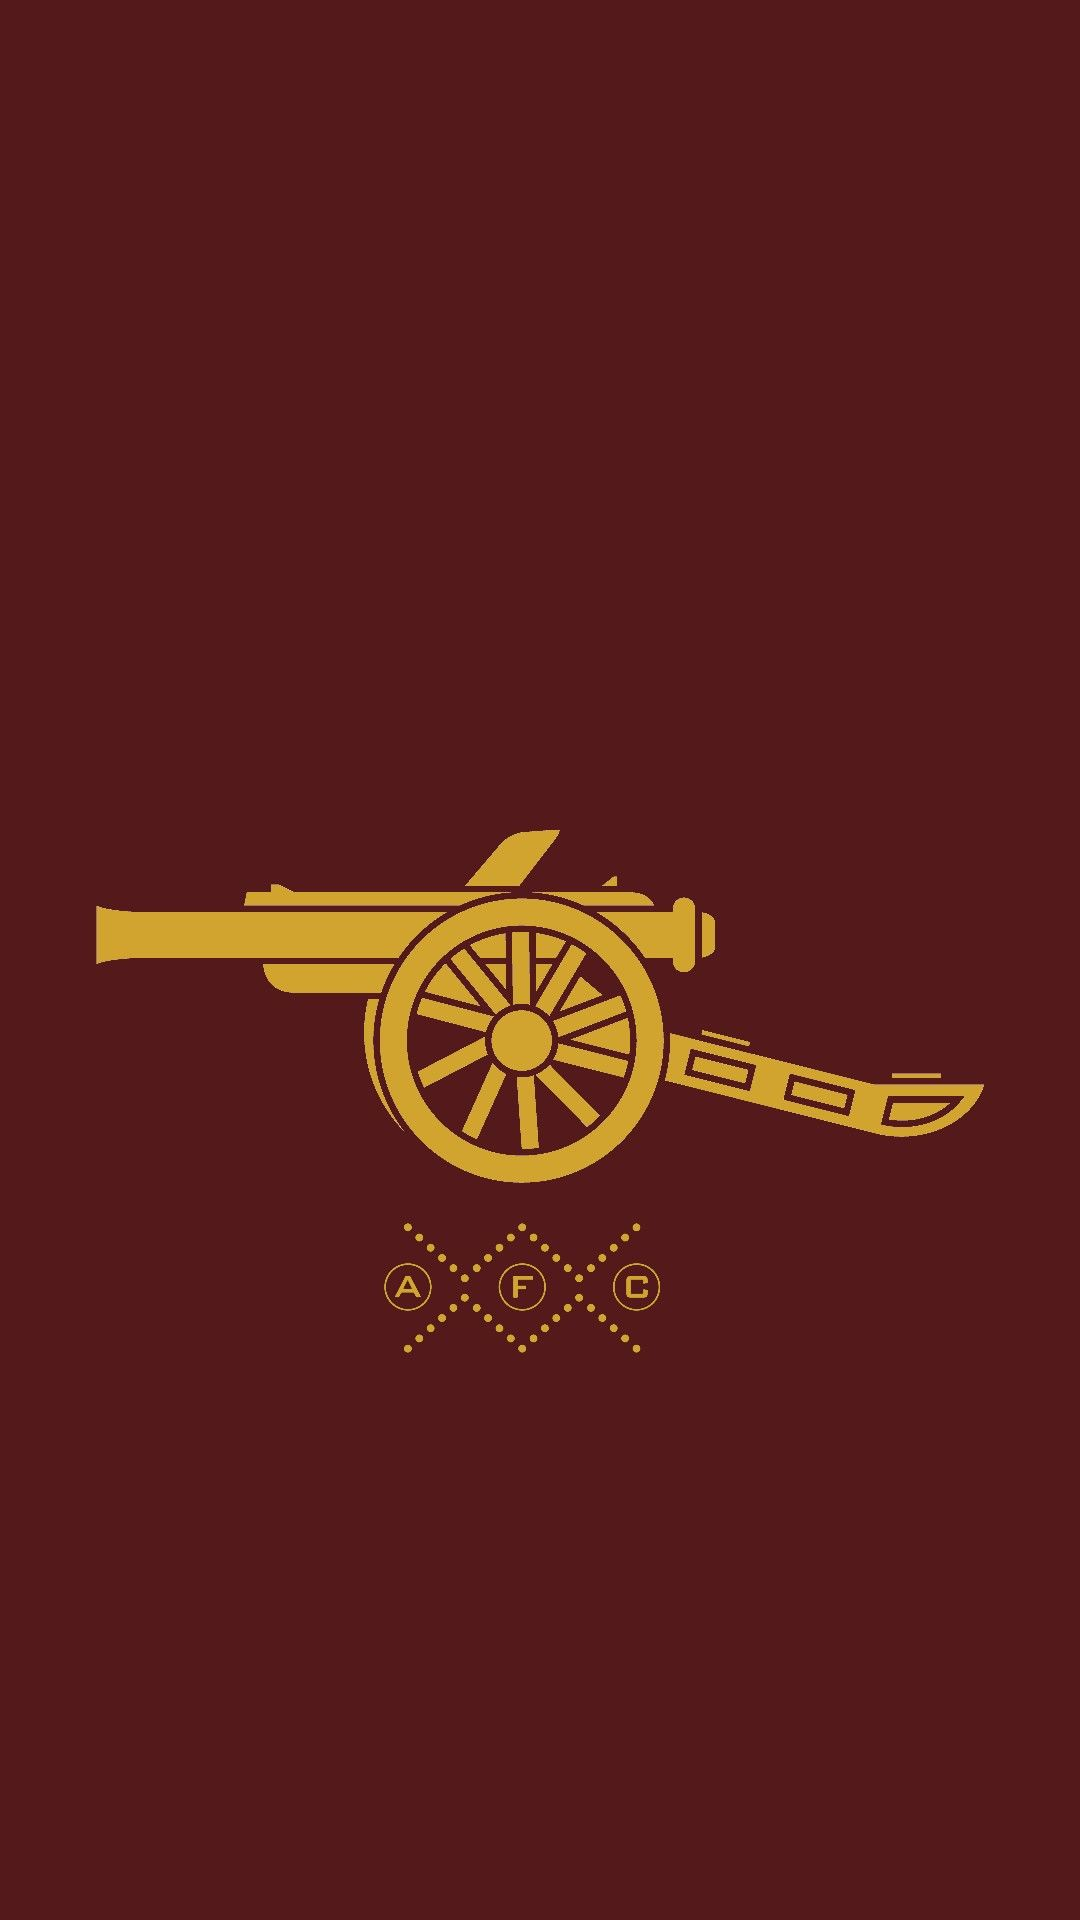 Arsenal Fc Wallpaper Lf Arsenal Arsenal Wallpapers Arsenal Fc